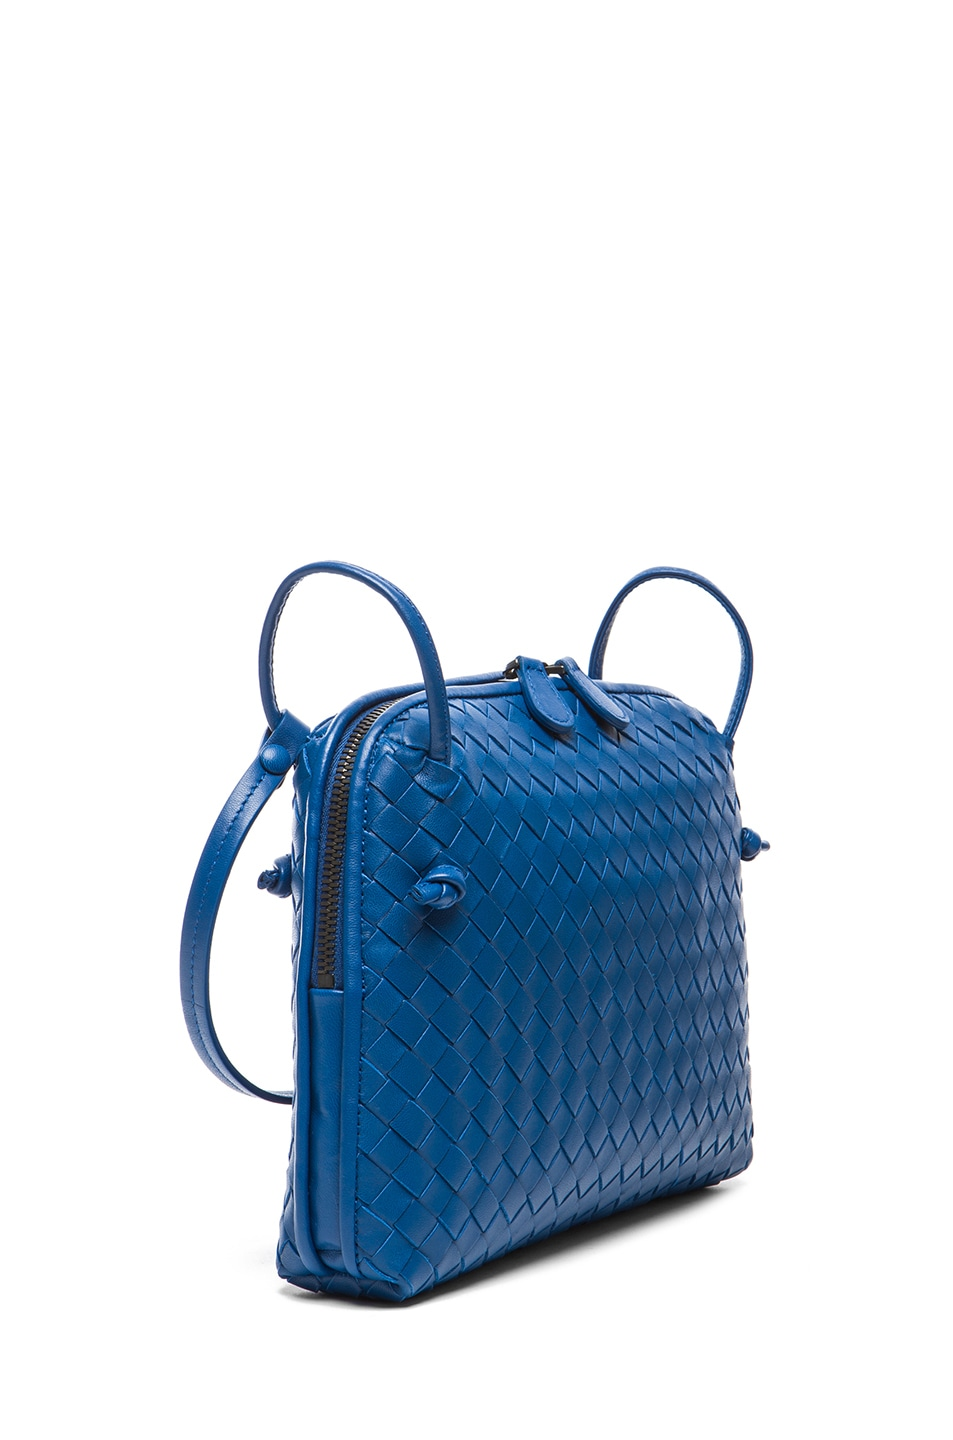 Image 3 of Bottega Veneta Intrecciato Nappa Cross Body Bag in Electrique